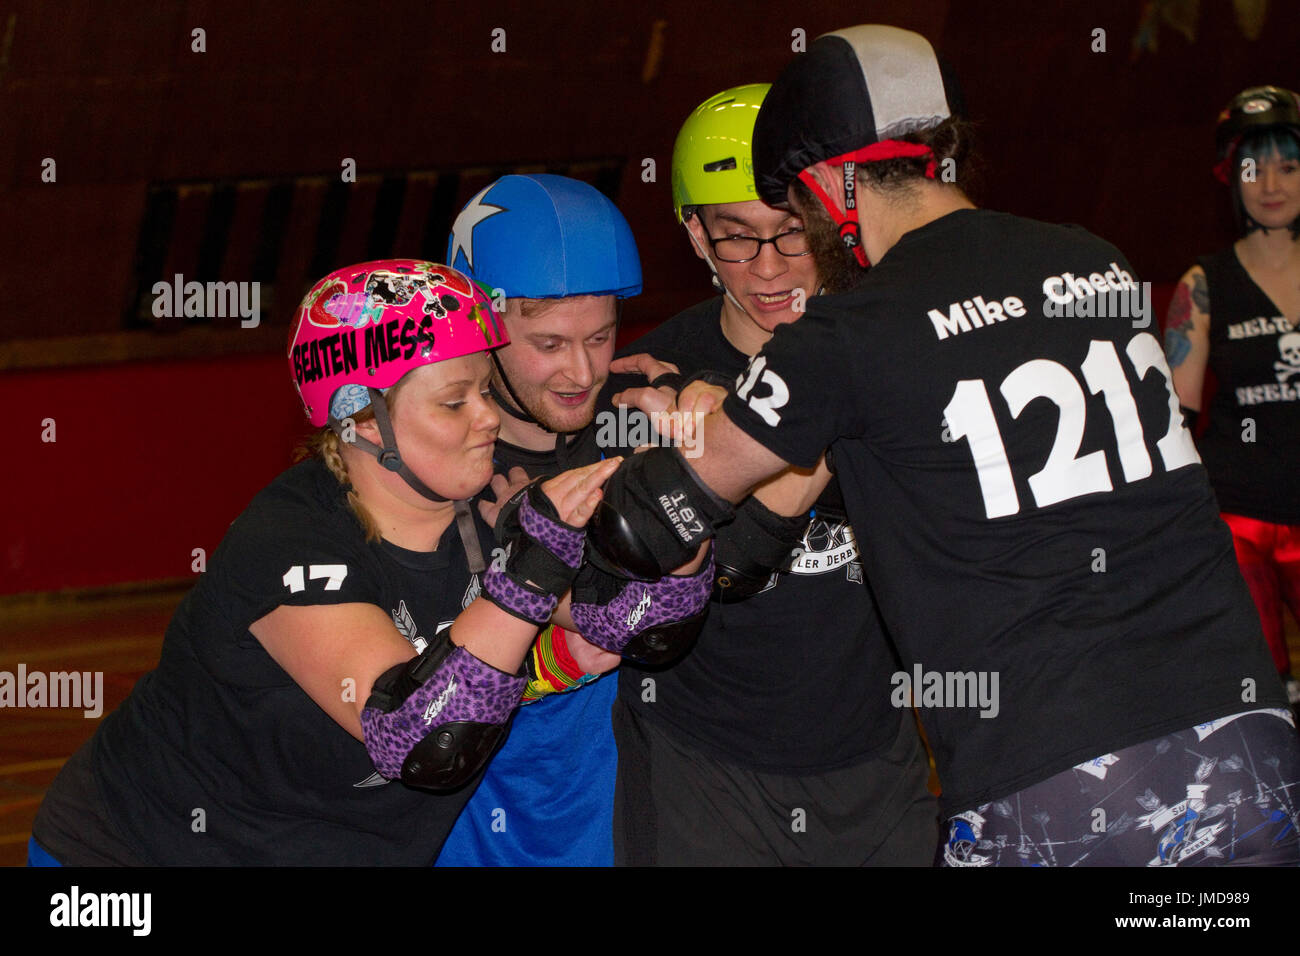 A mixed three wall block during a roller derby bout - Stock Image